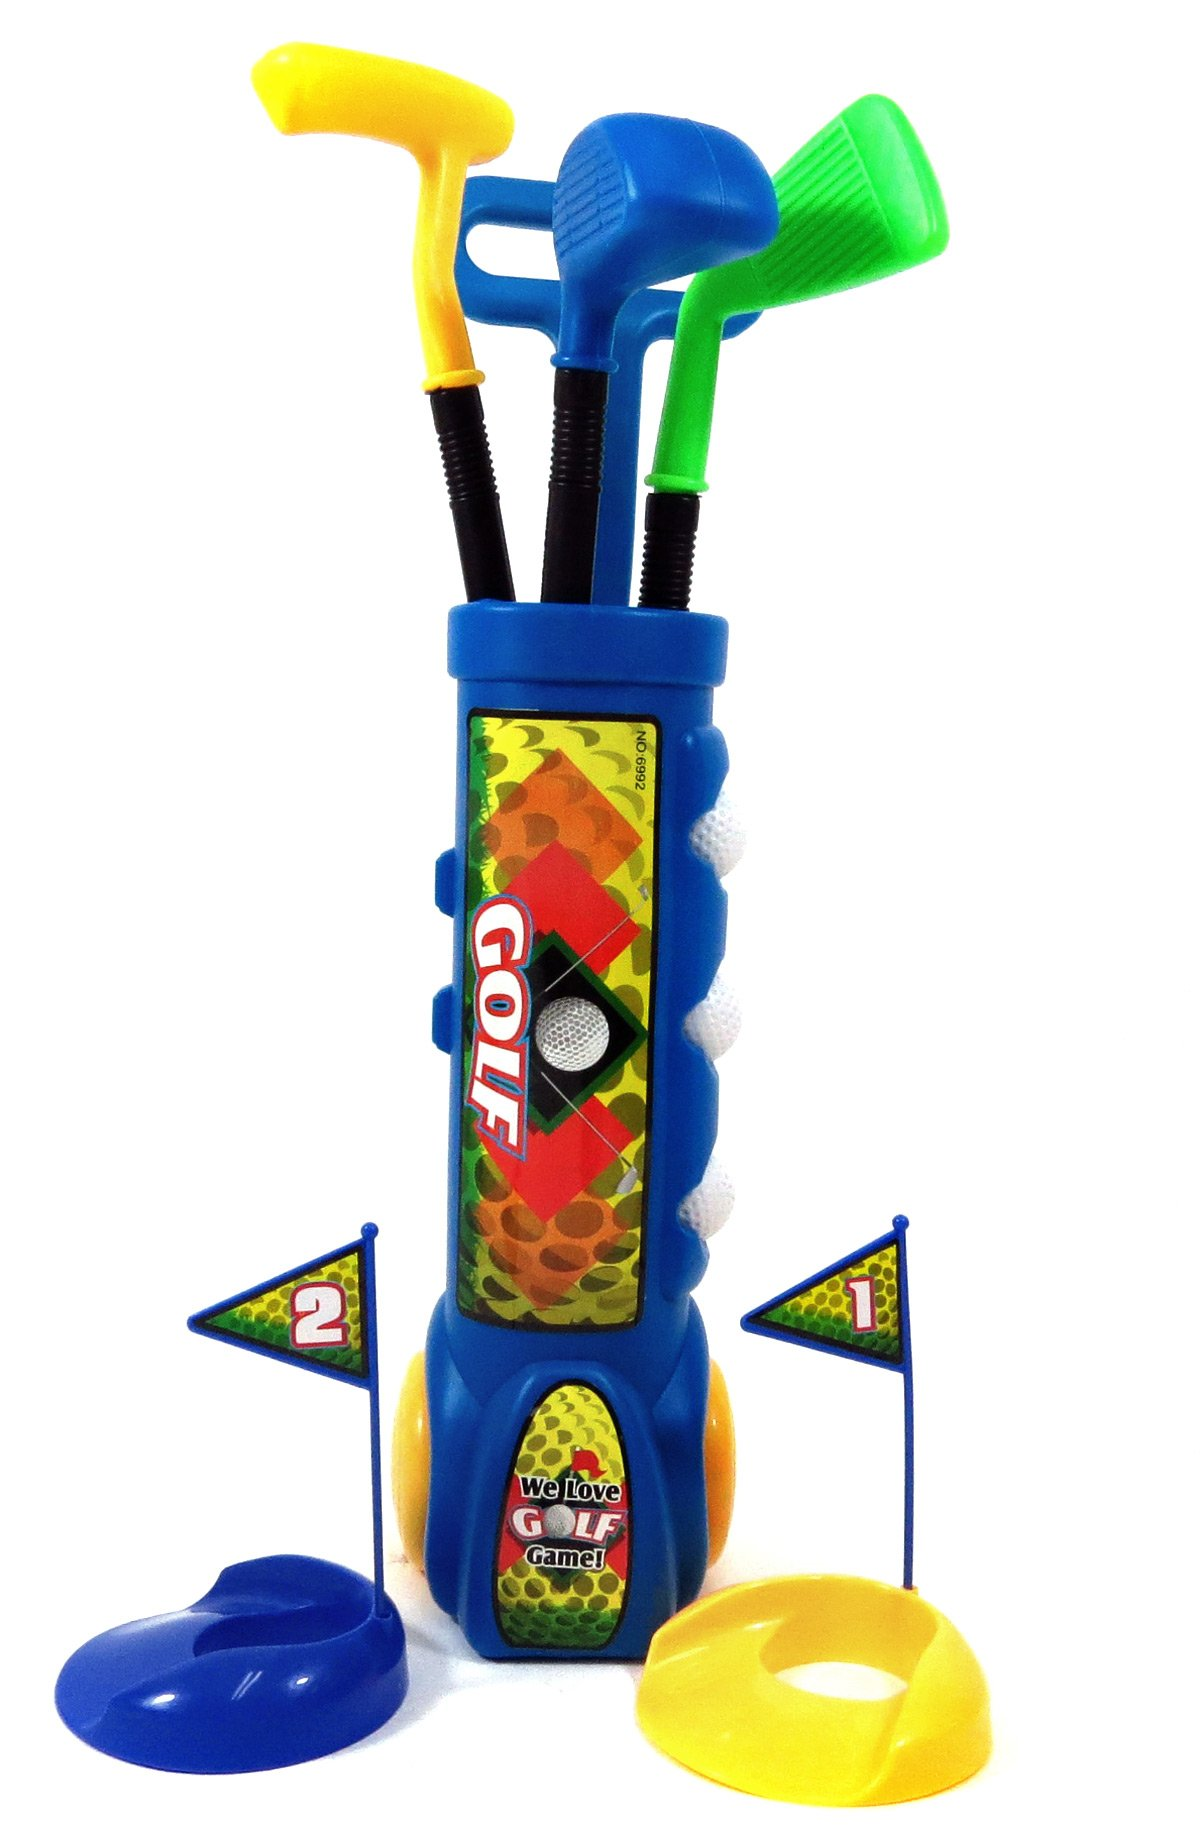 PowerTRC Deluxe Kid's Toy Golf Set w/ 3 Golf Balls, 3 Types of Clubs, 2 Practice Holes, Perfect Golf Set for Children (Blue) by PowerTRC